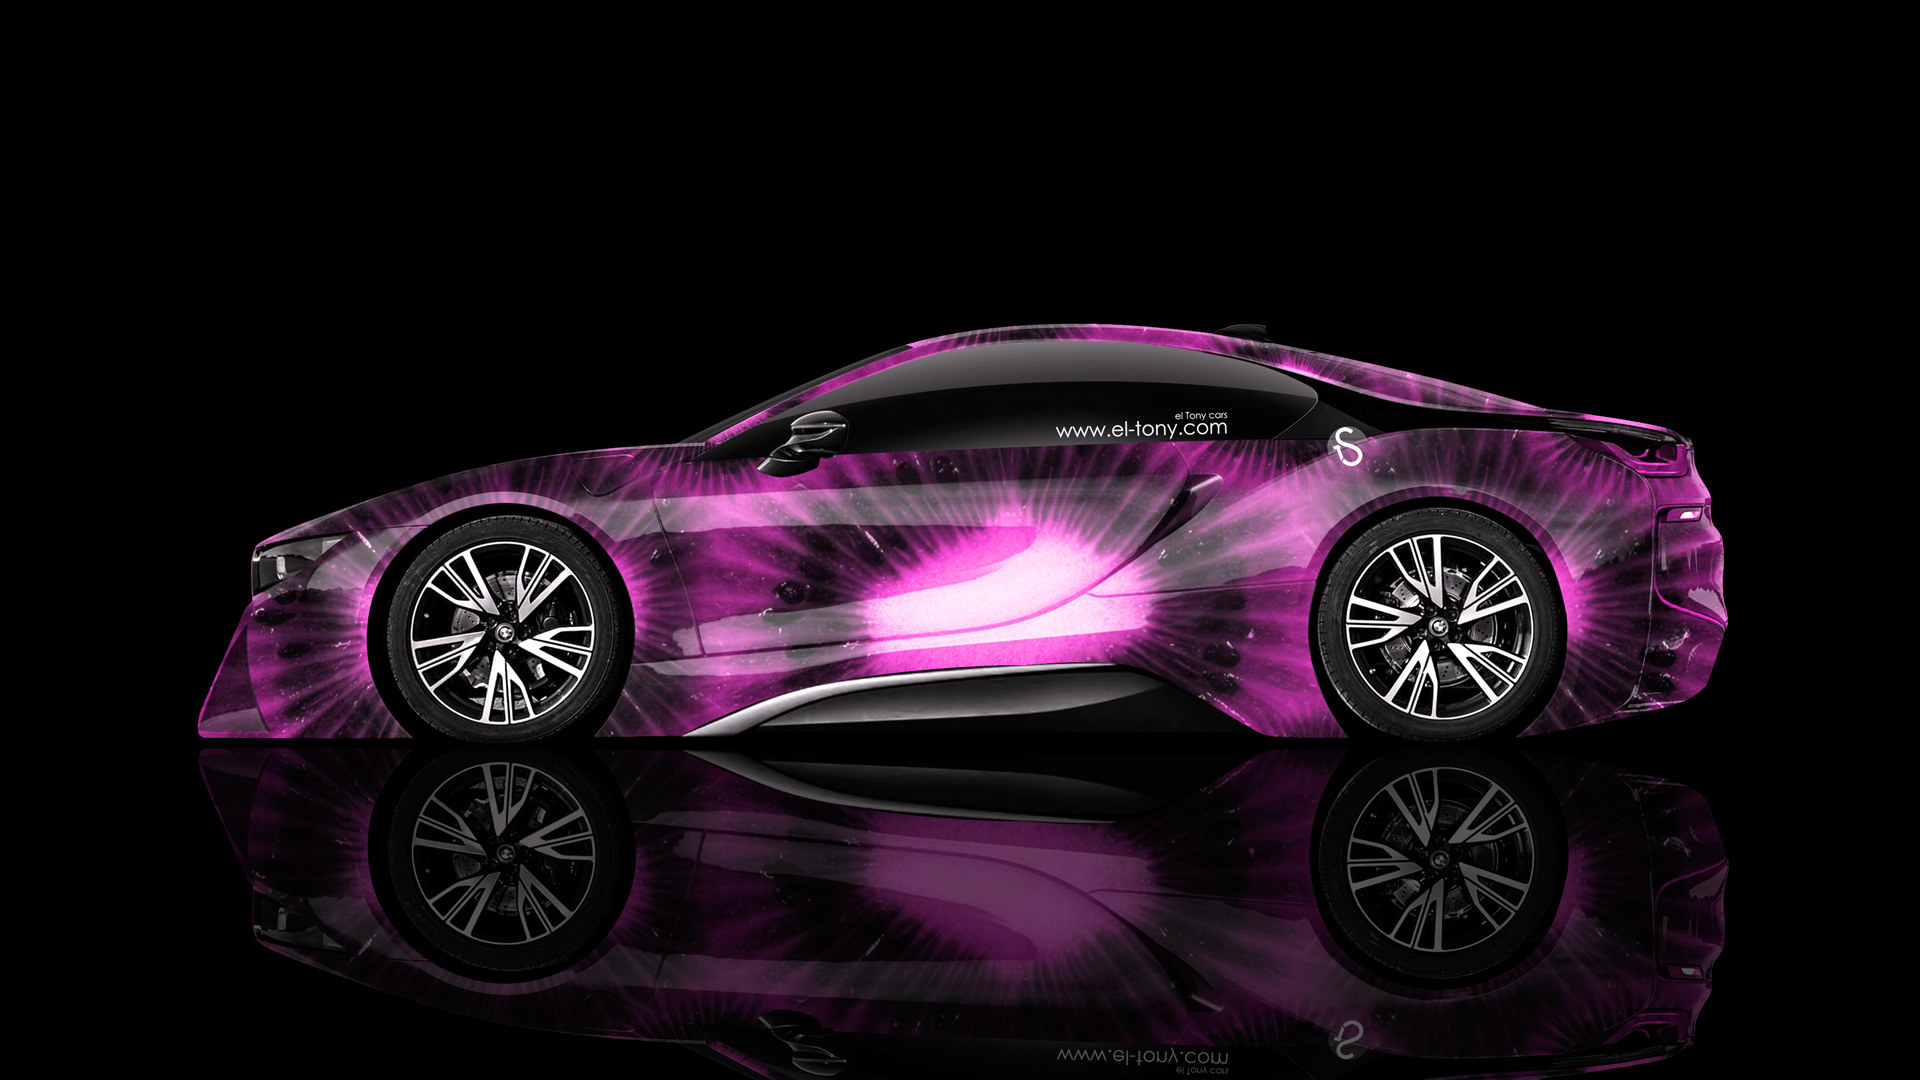 Bmw I8 Side Kiwi Aerography Car 2014 El Tony